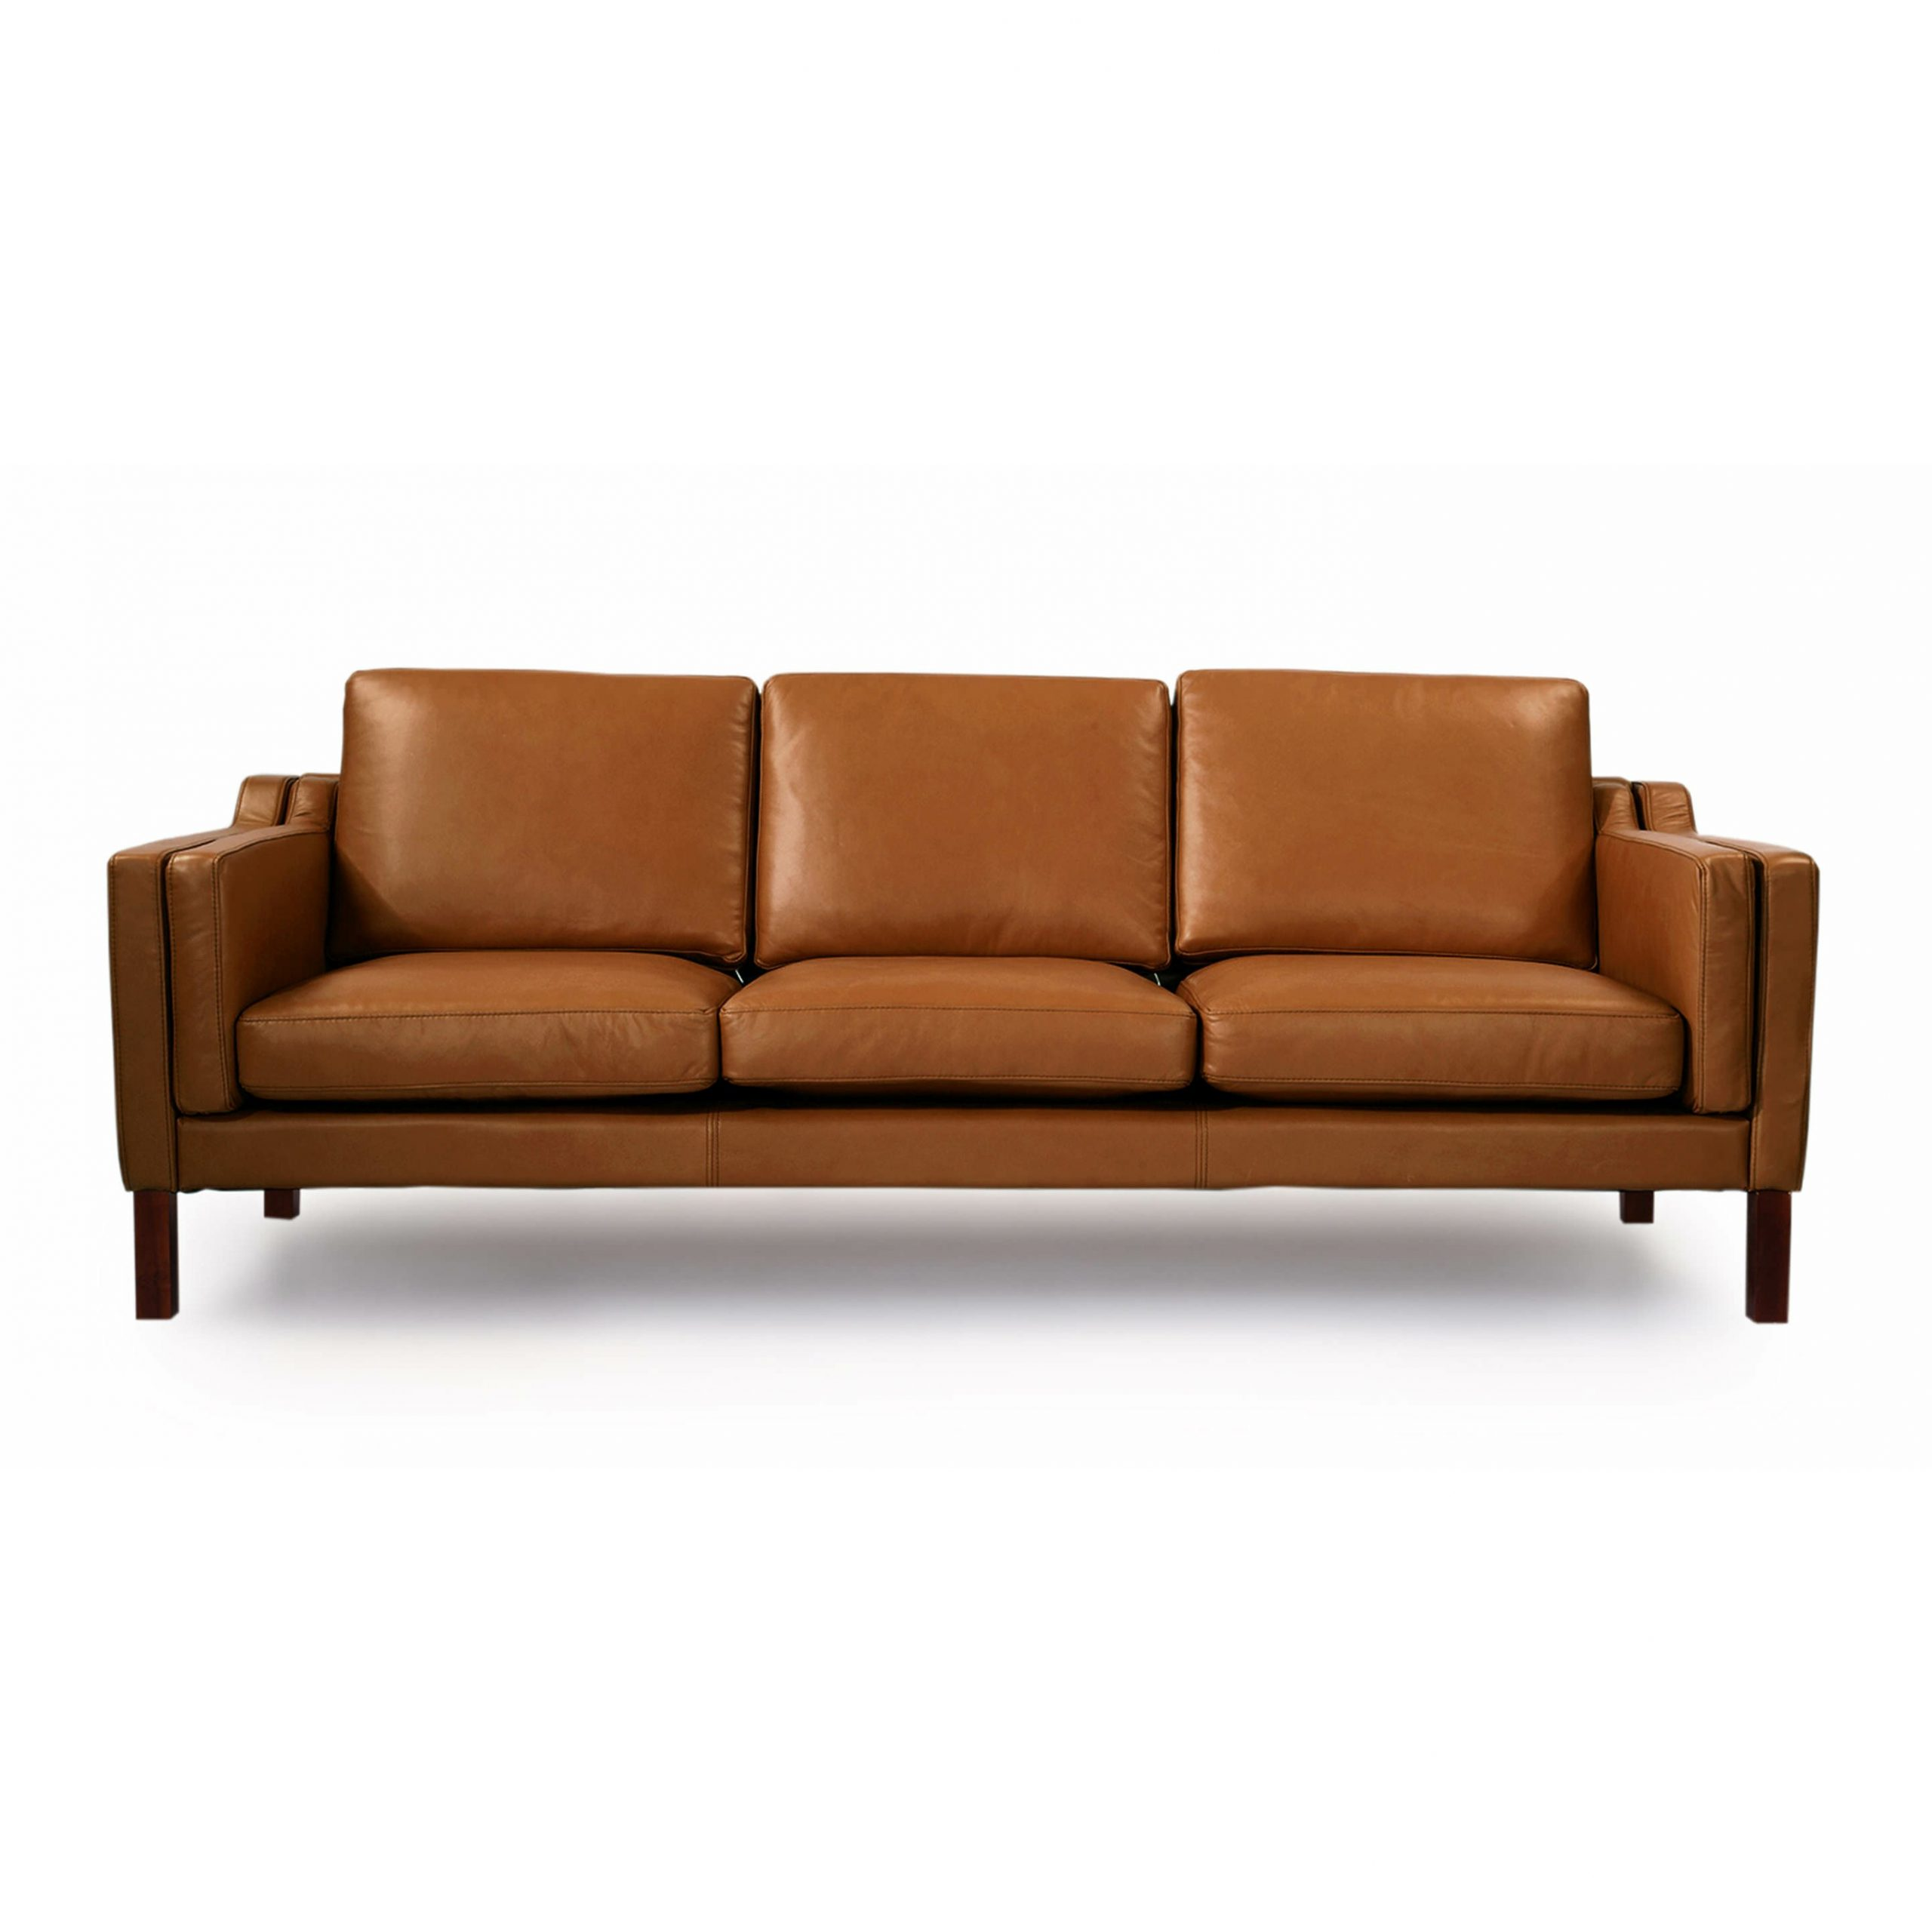 Riley Retro Mid Century Modern Fabric Upholstered Left Facing Chaise Sectional Sofas Pertaining To Widely Used Mid Century Leather Sofa (View 7 of 20)